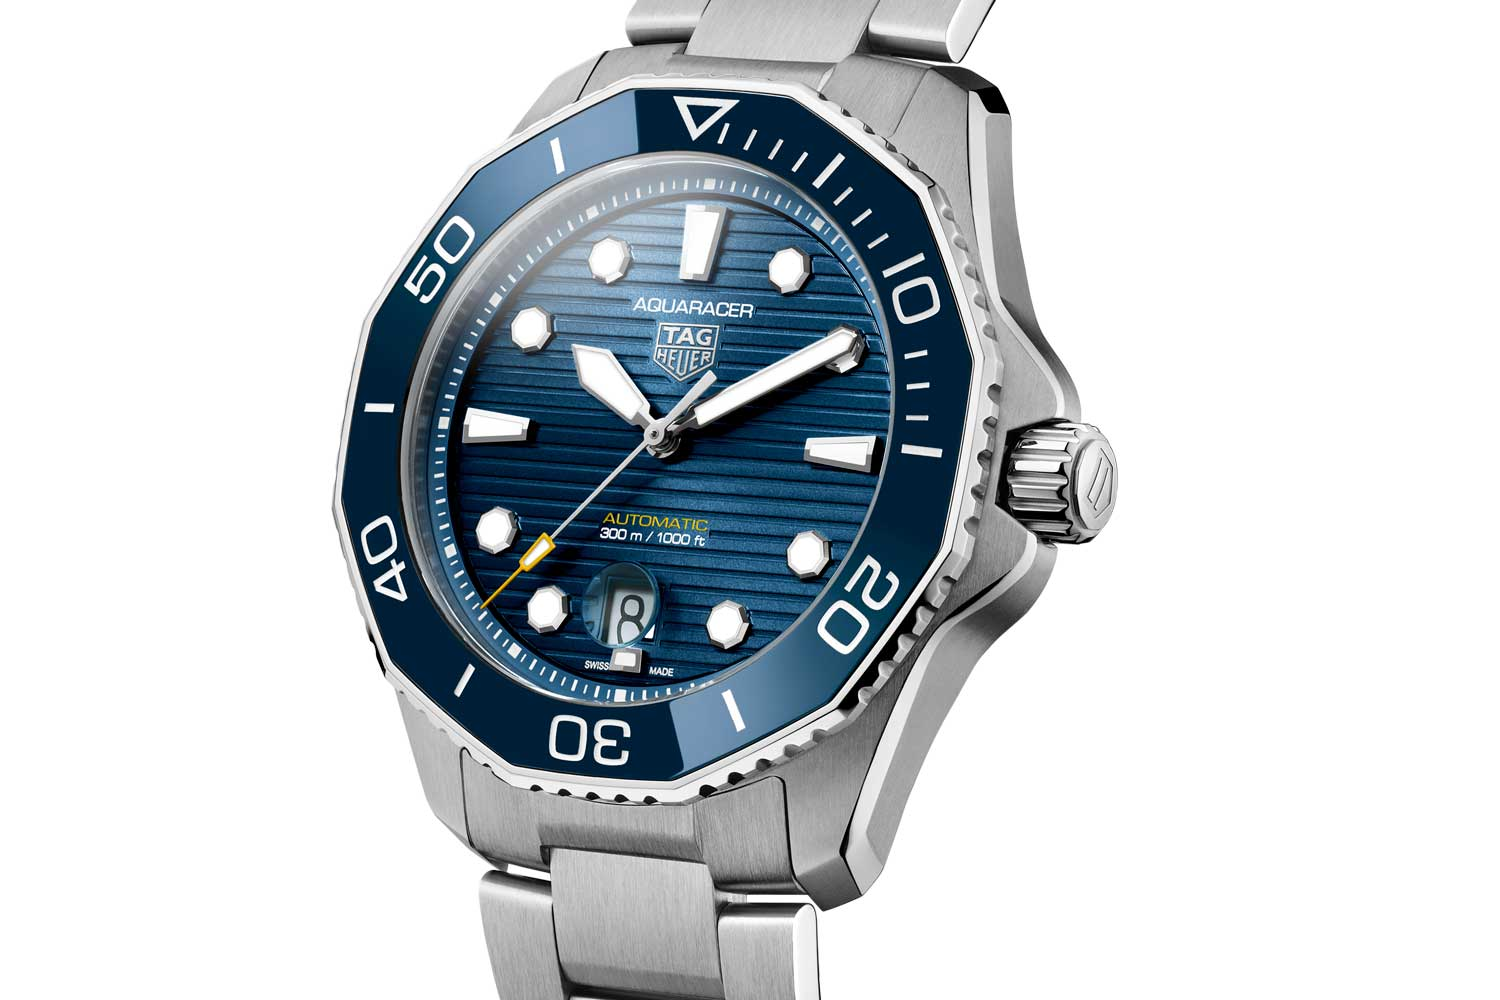 Devoid of any superfluous design details, the new Aquaracer watches are wonderfully rooted in the present.